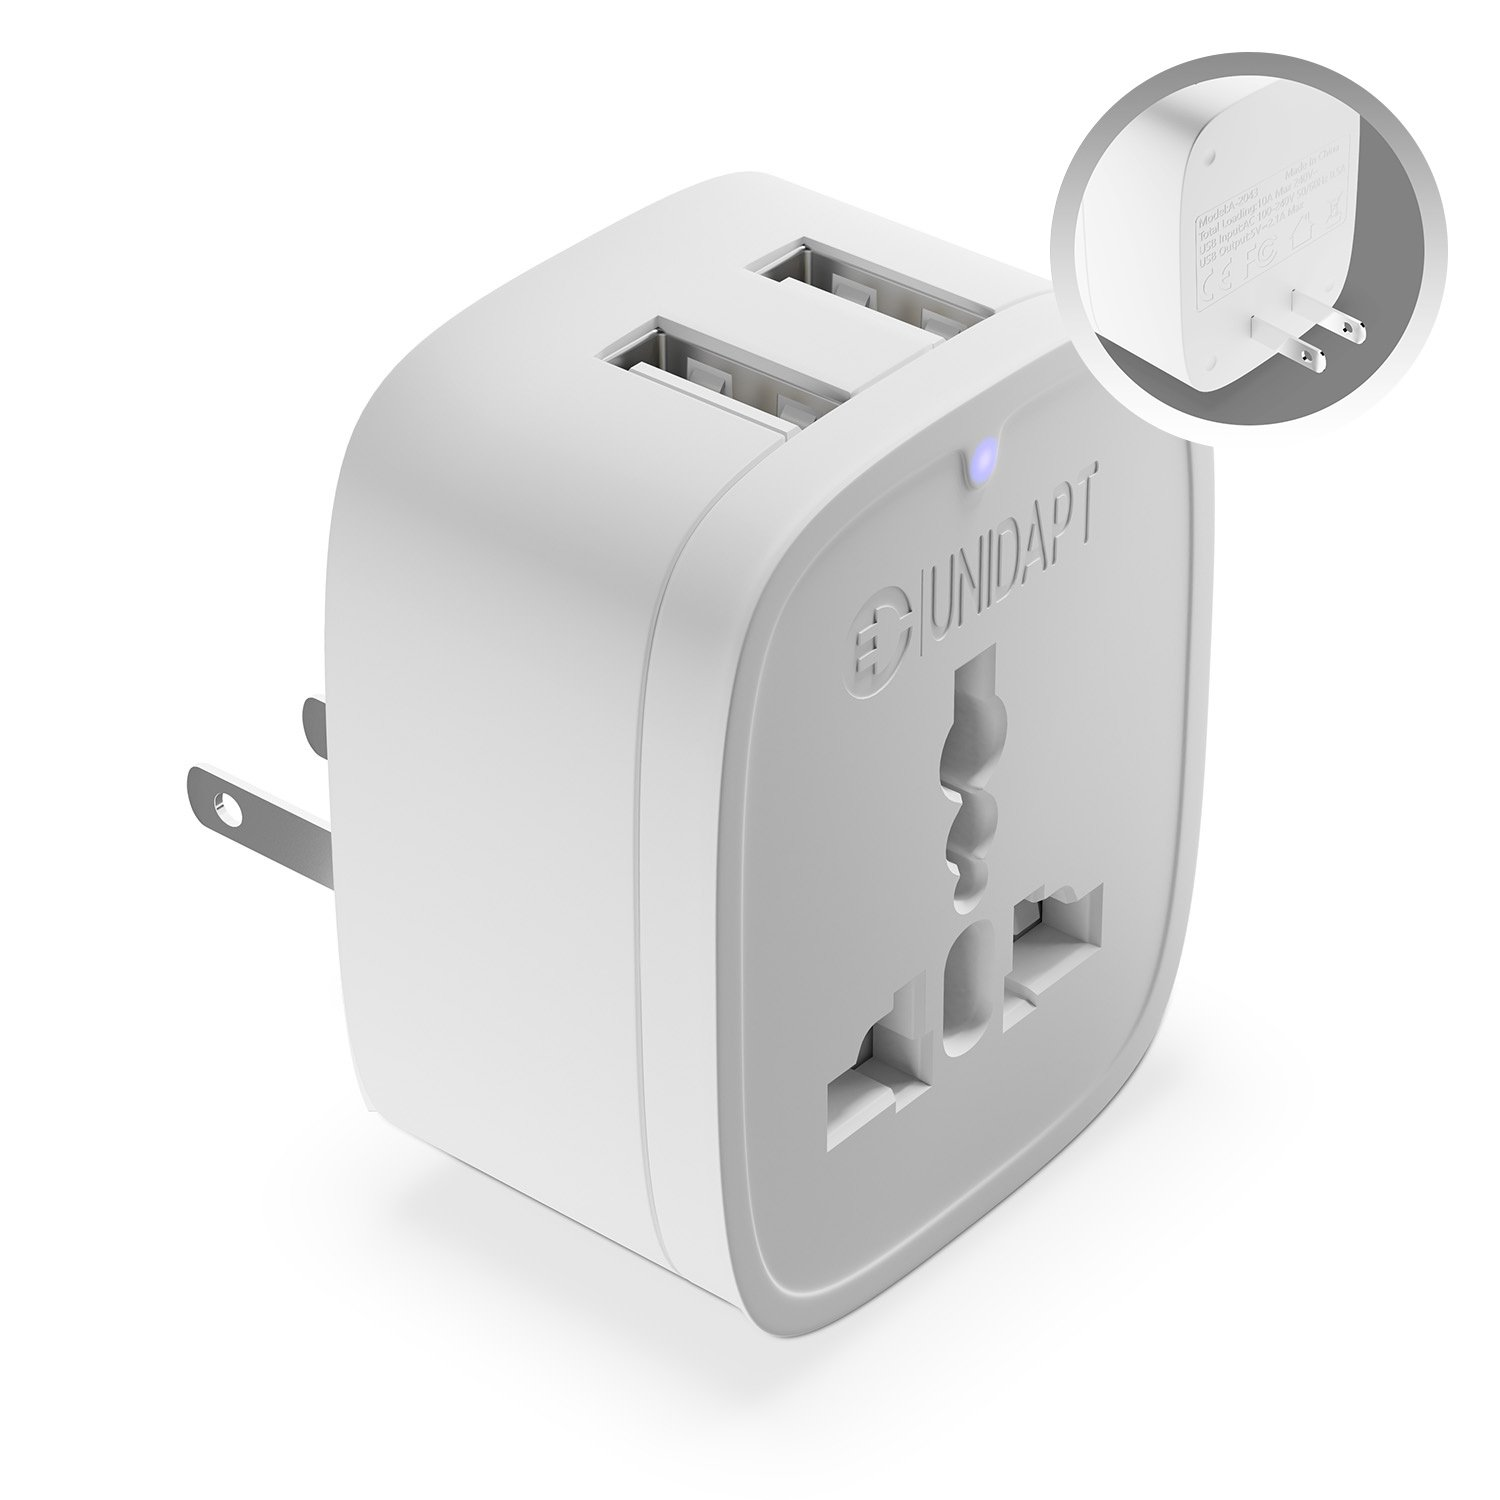 US Plug Adapter with 2 USB Outlet – Unidapt American USB Wall Charger, Travel from EU, Australia, China, UK to USA, Canada, Mexico, Japan Type-A